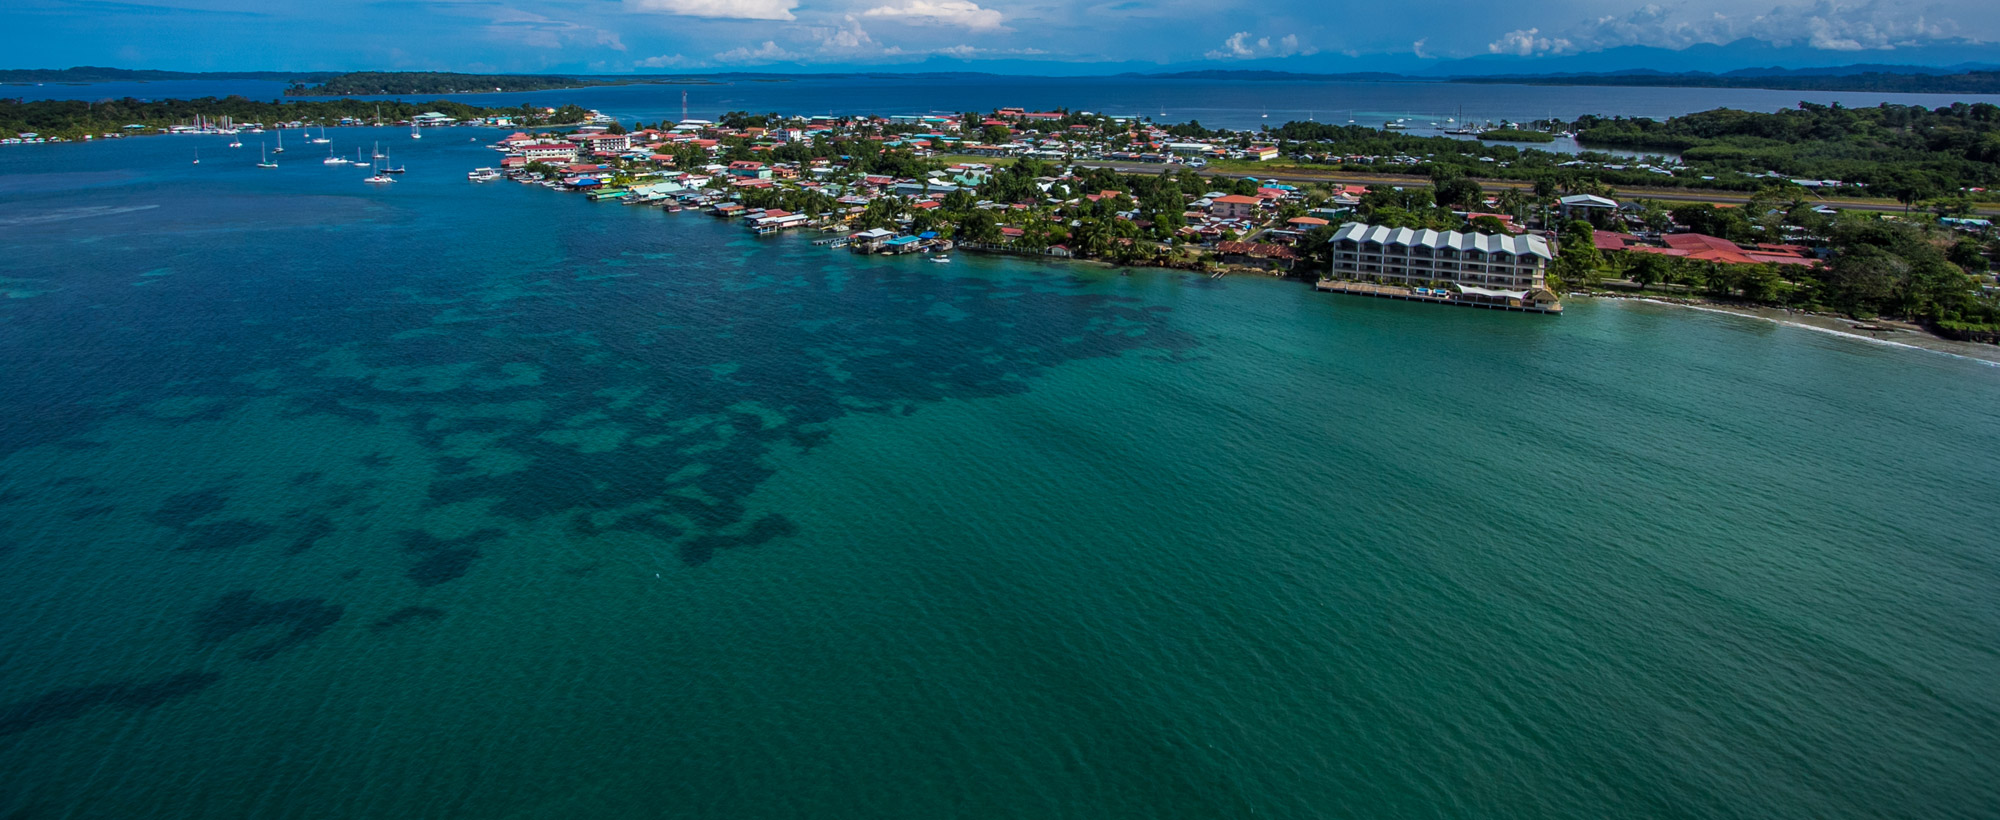 3 Businesses For Sale in Bocas Town